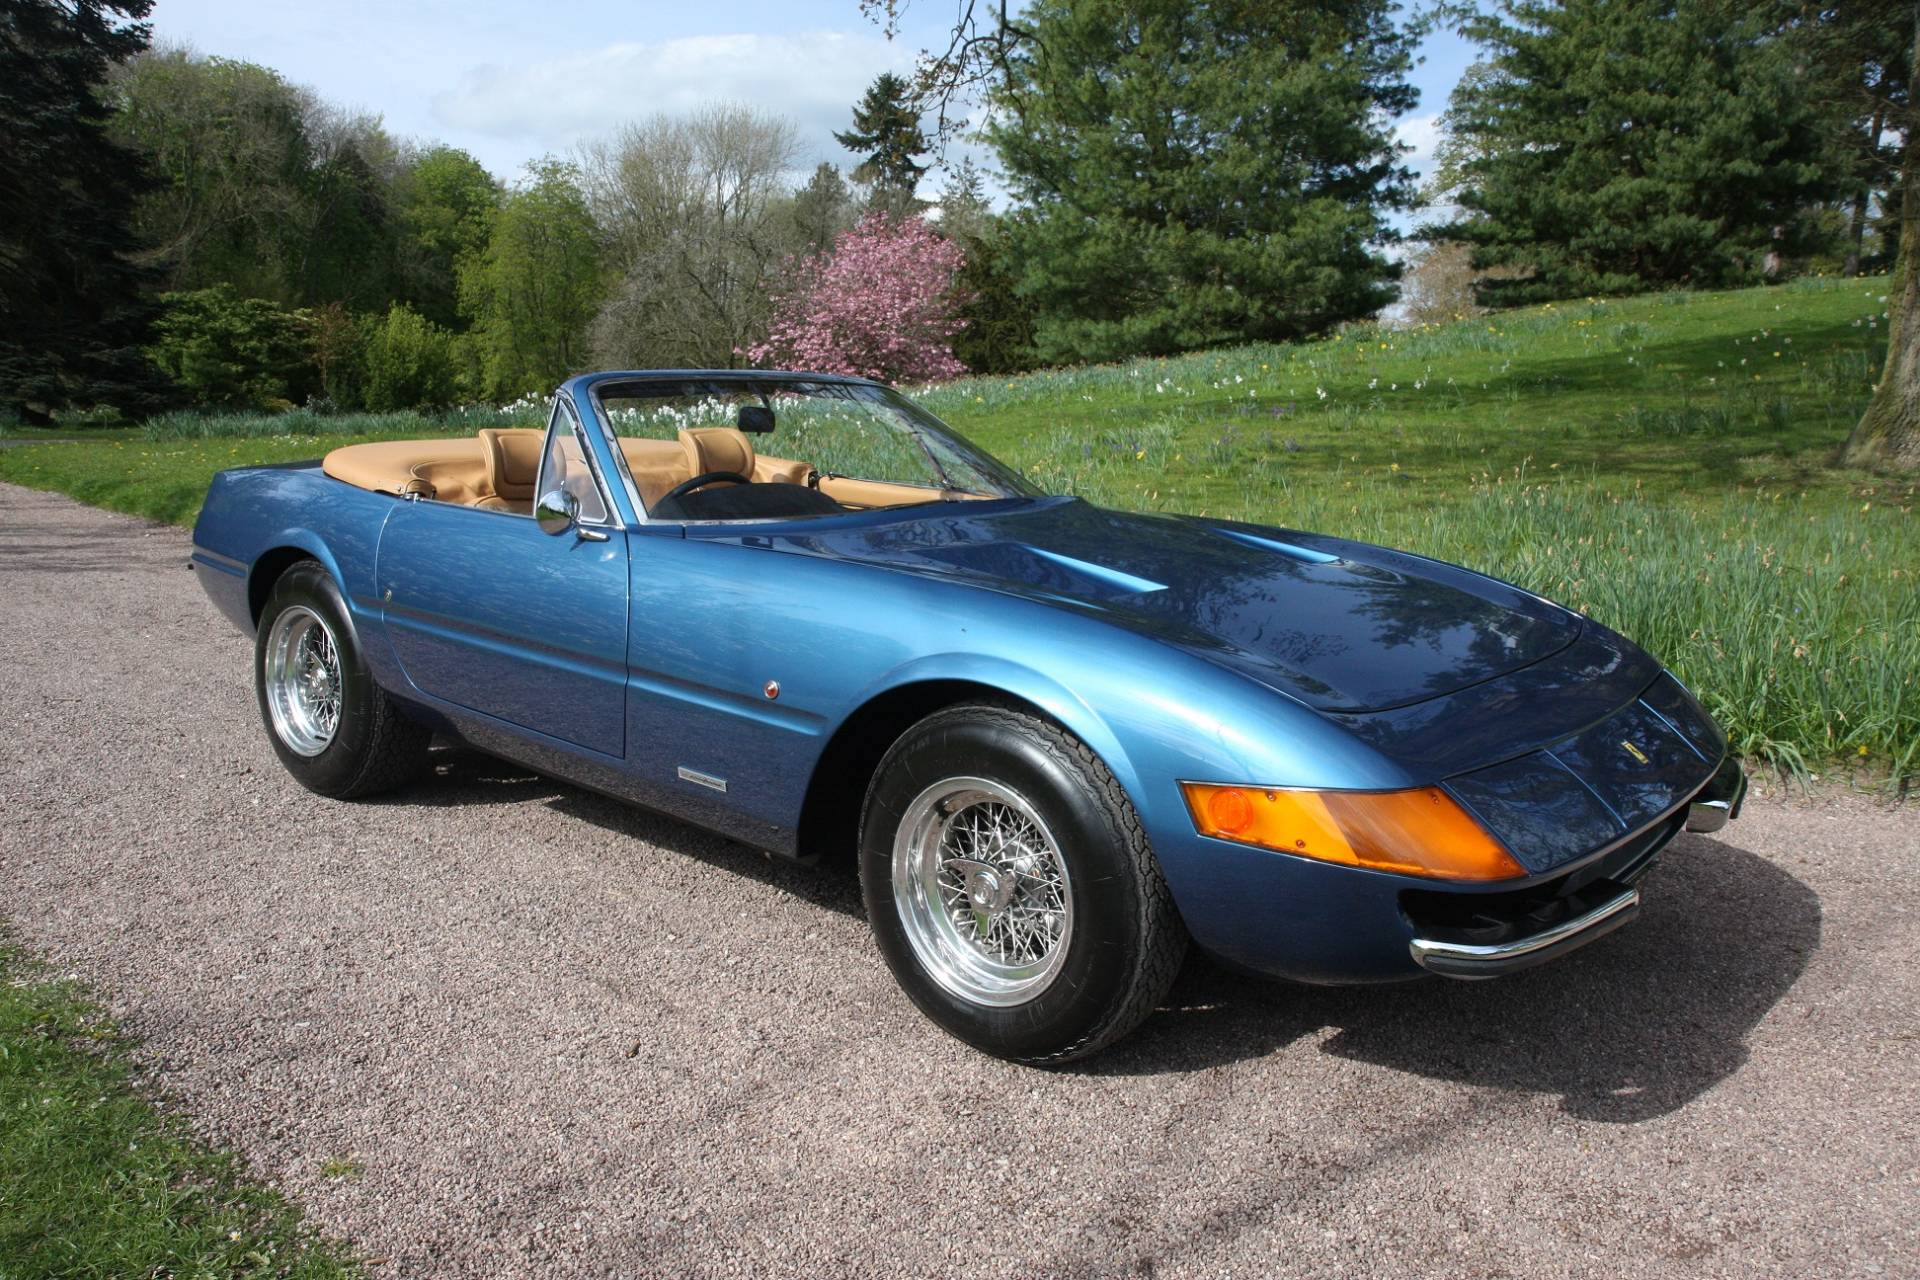 ferrari 365 gts 4 daytona 1972 for sale classic trader. Black Bedroom Furniture Sets. Home Design Ideas